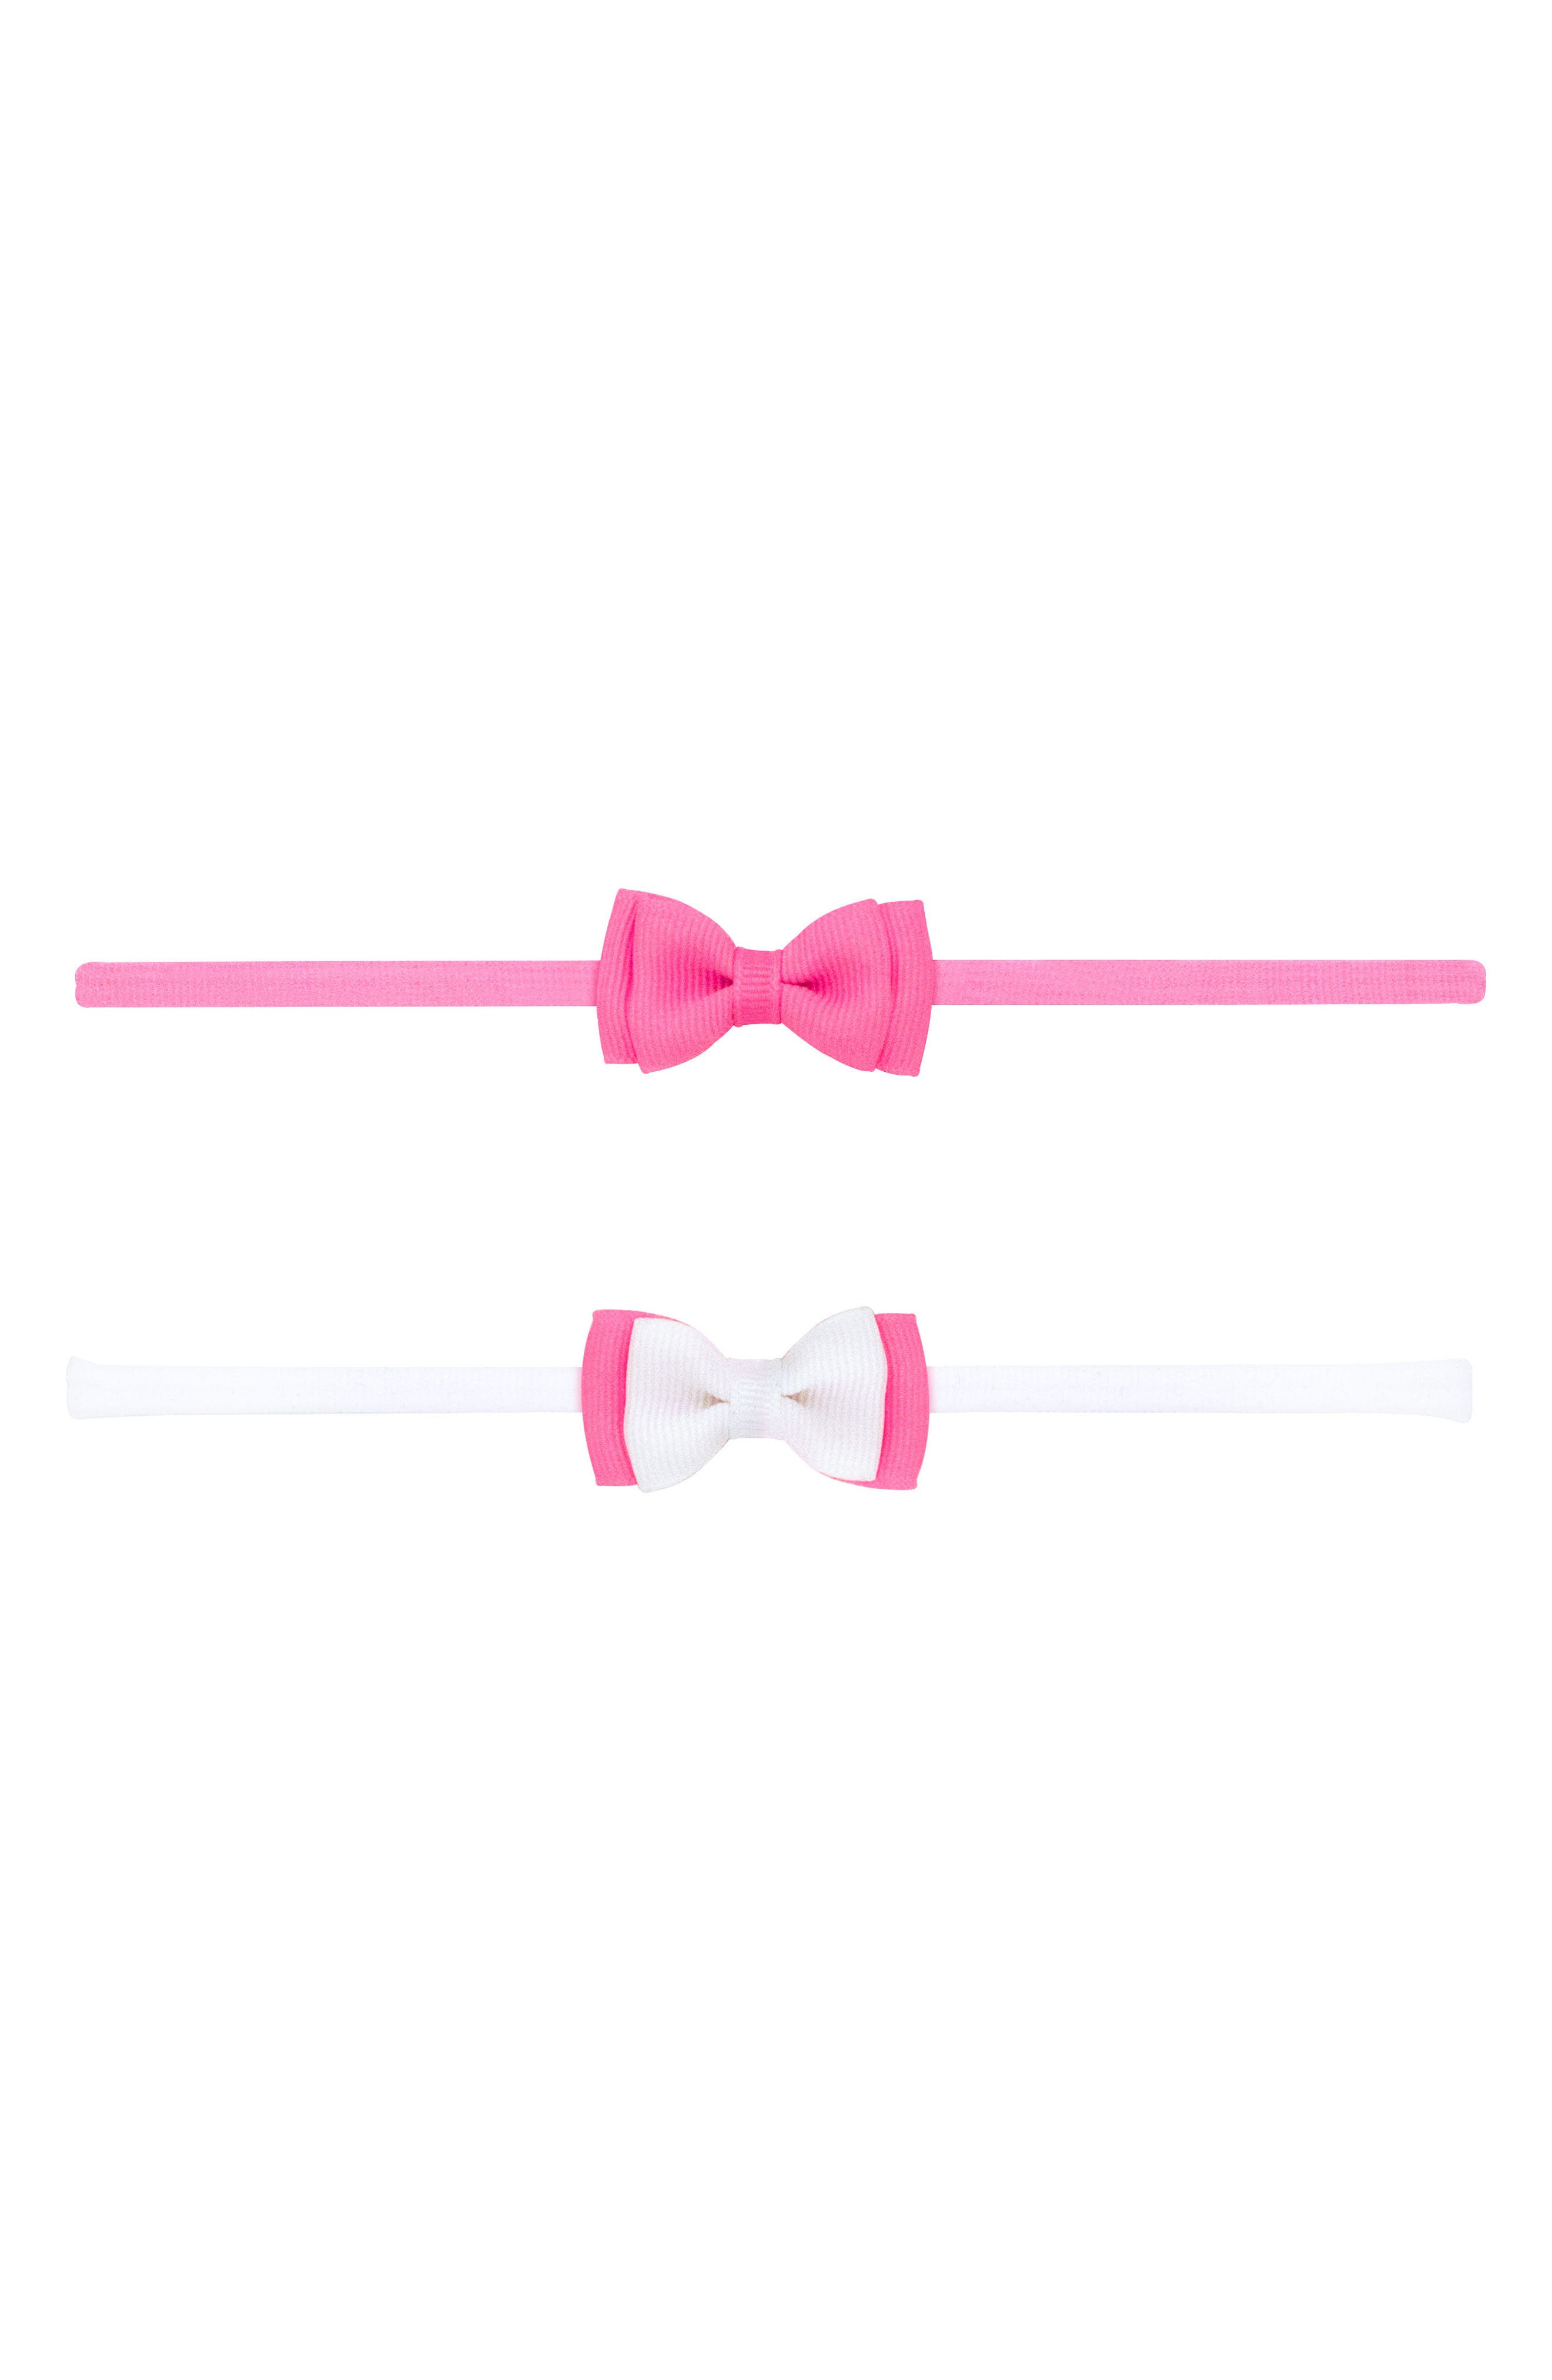 2-Pack Bow Headbands,                             Main thumbnail 1, color,                             Hot Pink